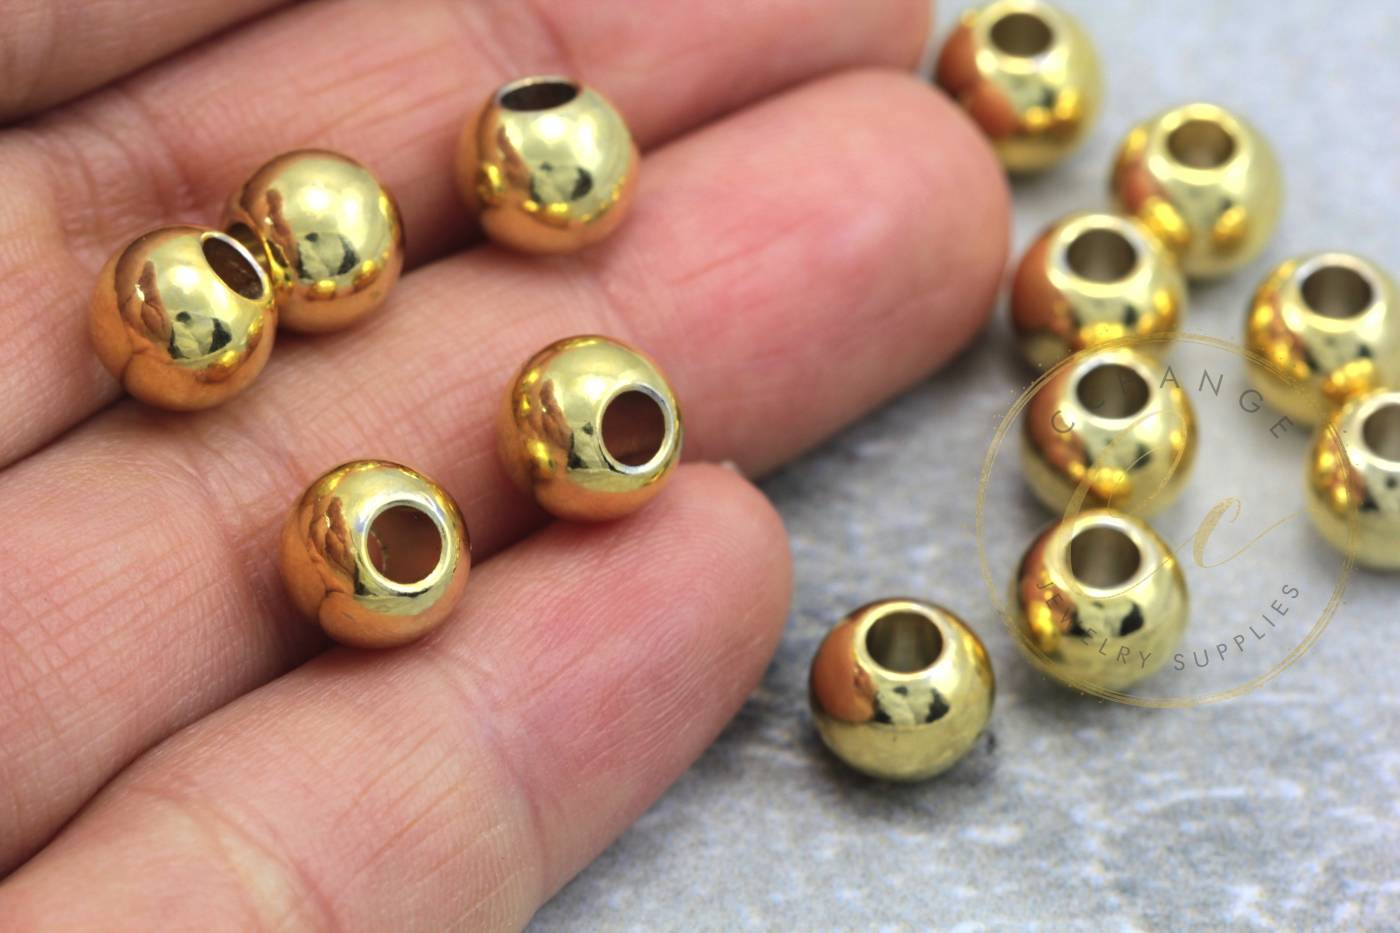 gold-metal-jewelry-loose-beads.jpg